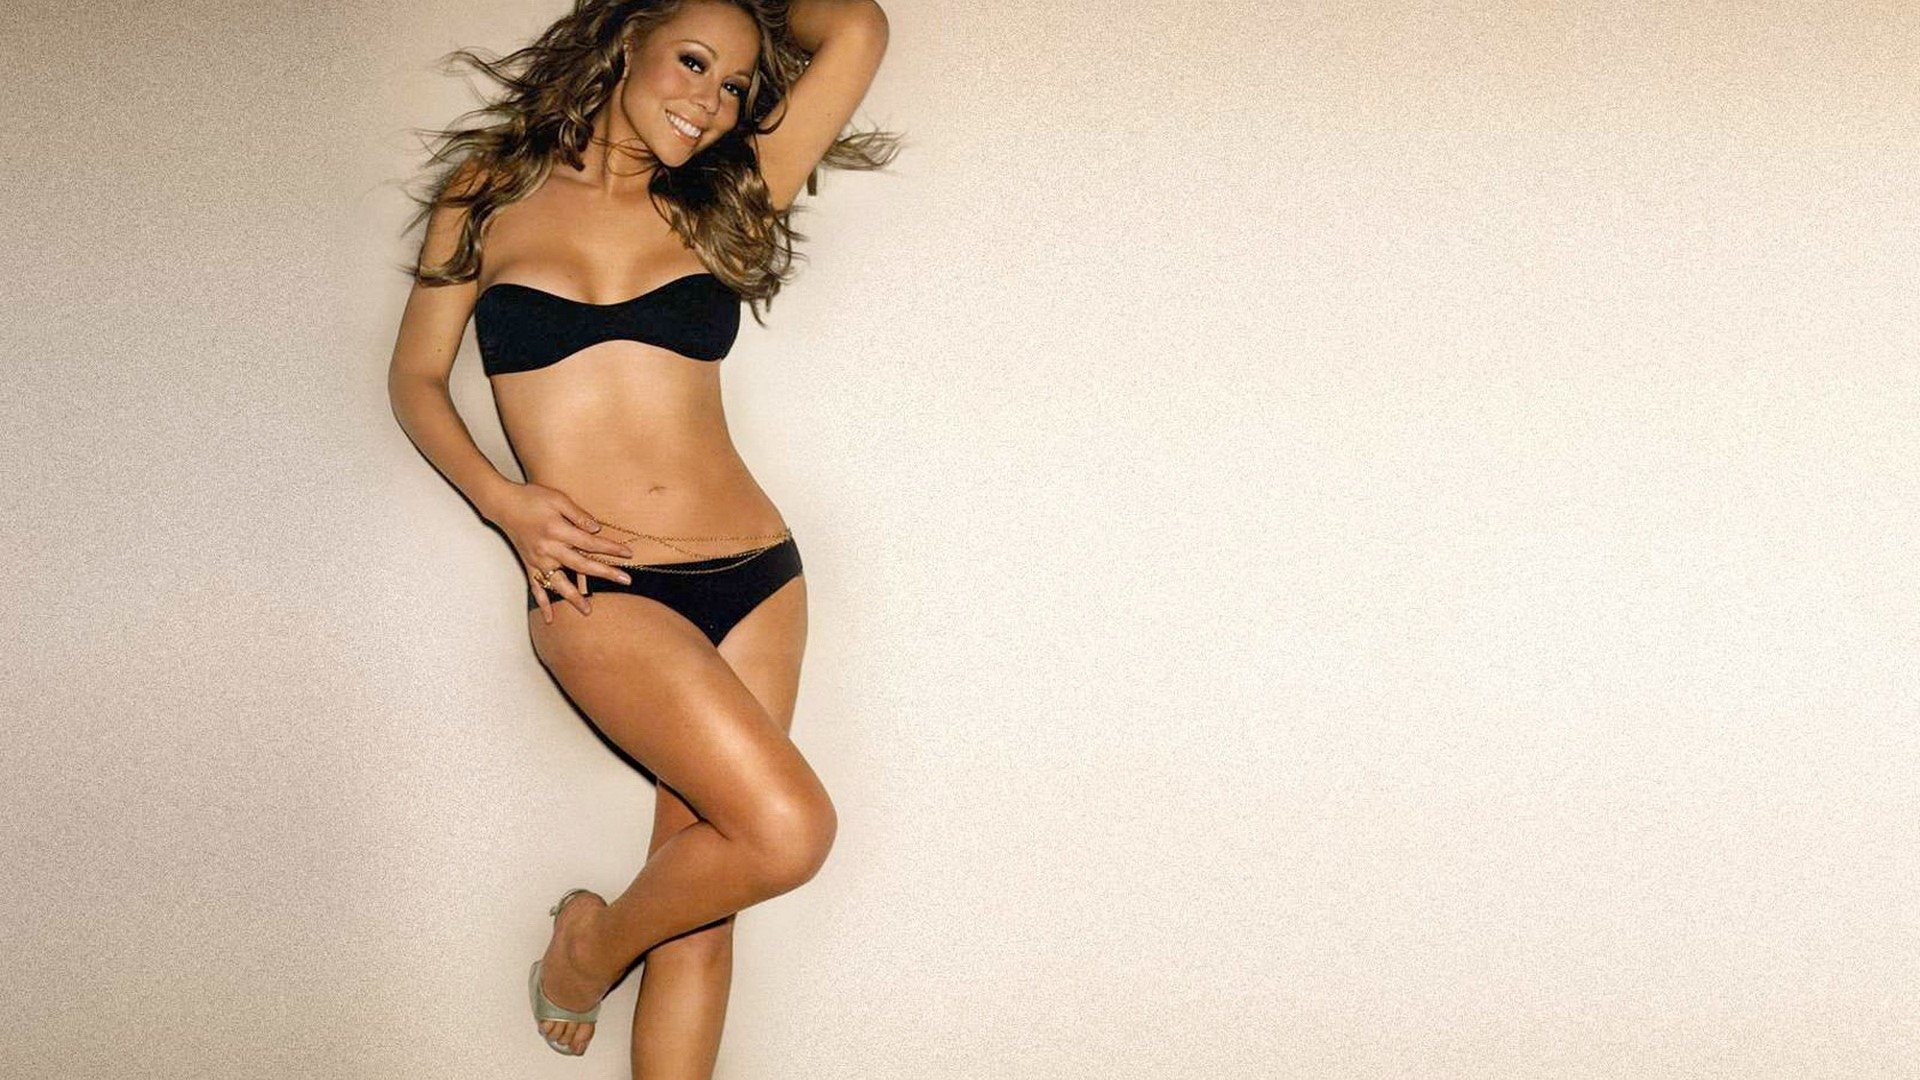 Mariah Carey Lingerie Wallpapers